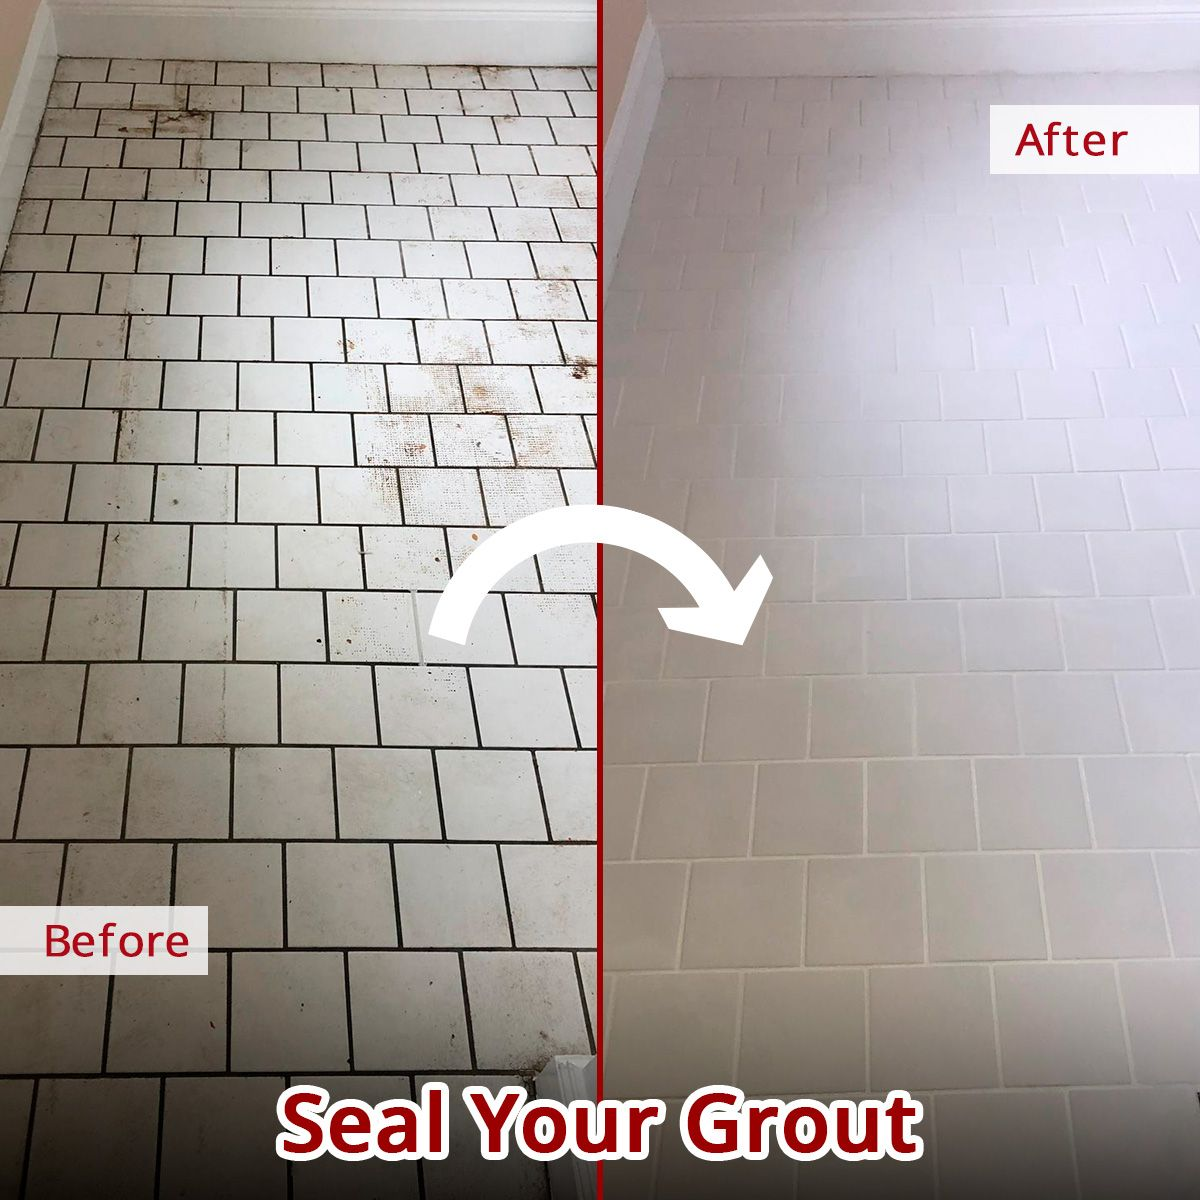 Seal Your Grout